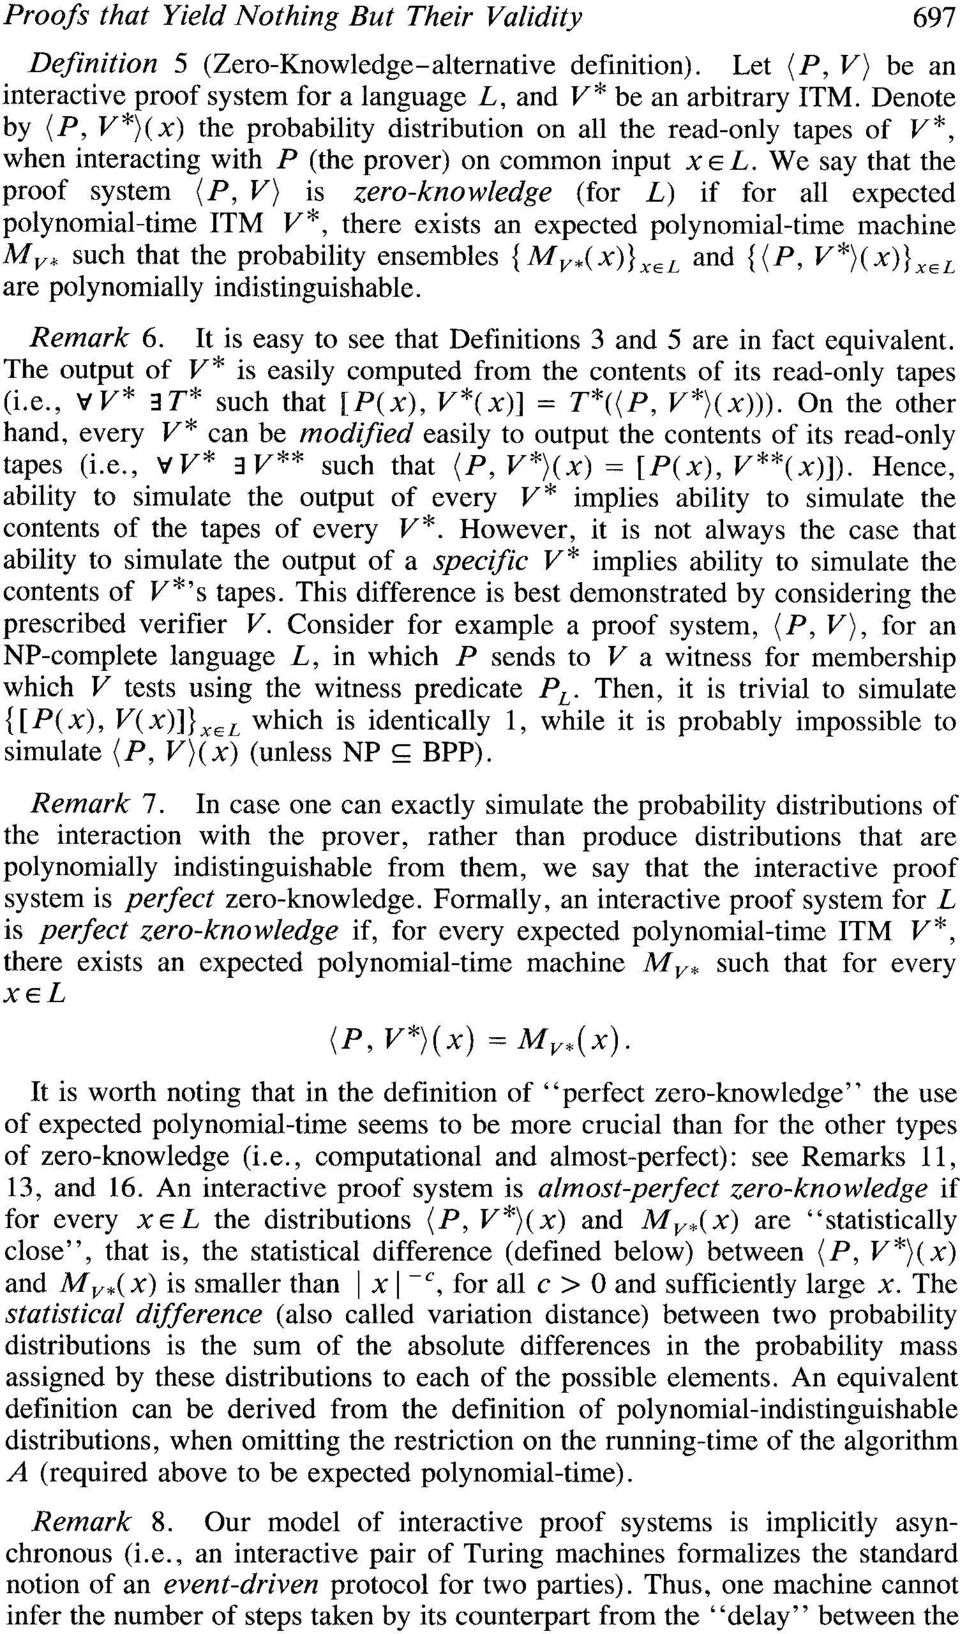 We say that the proof system (P, V) is zero-knowledge (for L) if for all expected polynomial-time ITM V*, there exists an expected polynomial-time machine &lv.